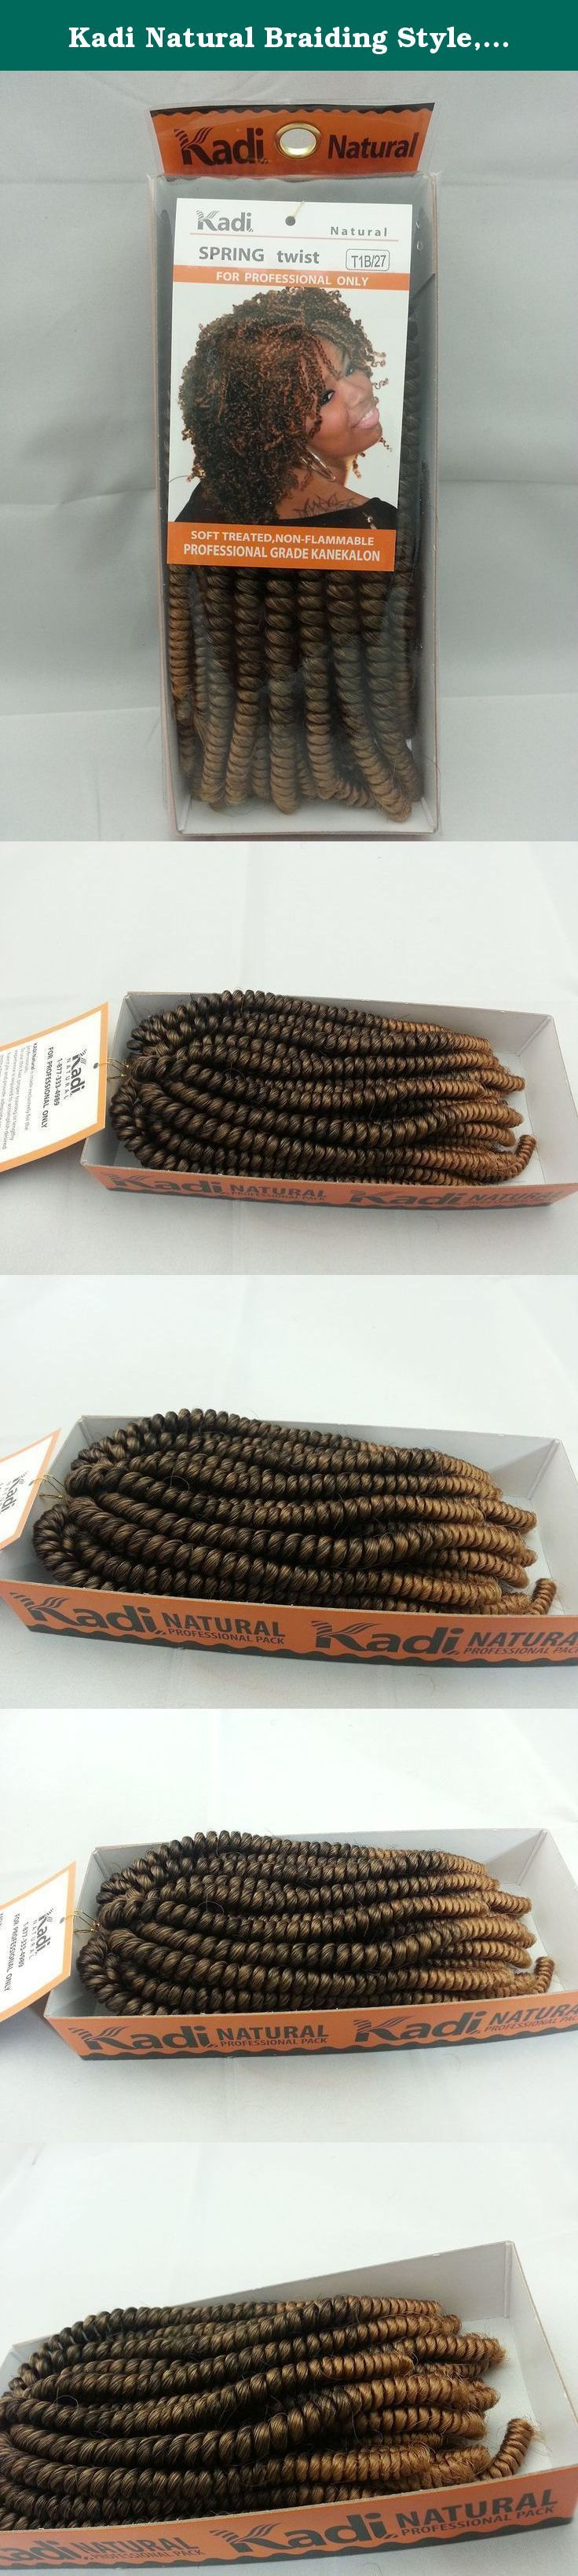 Kadi Natural Braiding Style, Hair Extension, Professional Grade Kanekalon (T1B/27 - Black / Honey Blond, SPRING TWIST). Actual pictures of the item 1. Kadi Spring Twist Kadi Collection Kadi Natural Collection Soft And Bouncy Extremely Soft Fibers Soft Smooth & Incredibly Light Weight Non-Flammable Professional Grade Kanekalon Soft and Bouncy. Elegance, character and originality. Great transitional hairstyle, going from relaxed to natural. The Spring Twist is a protective hair braid that...